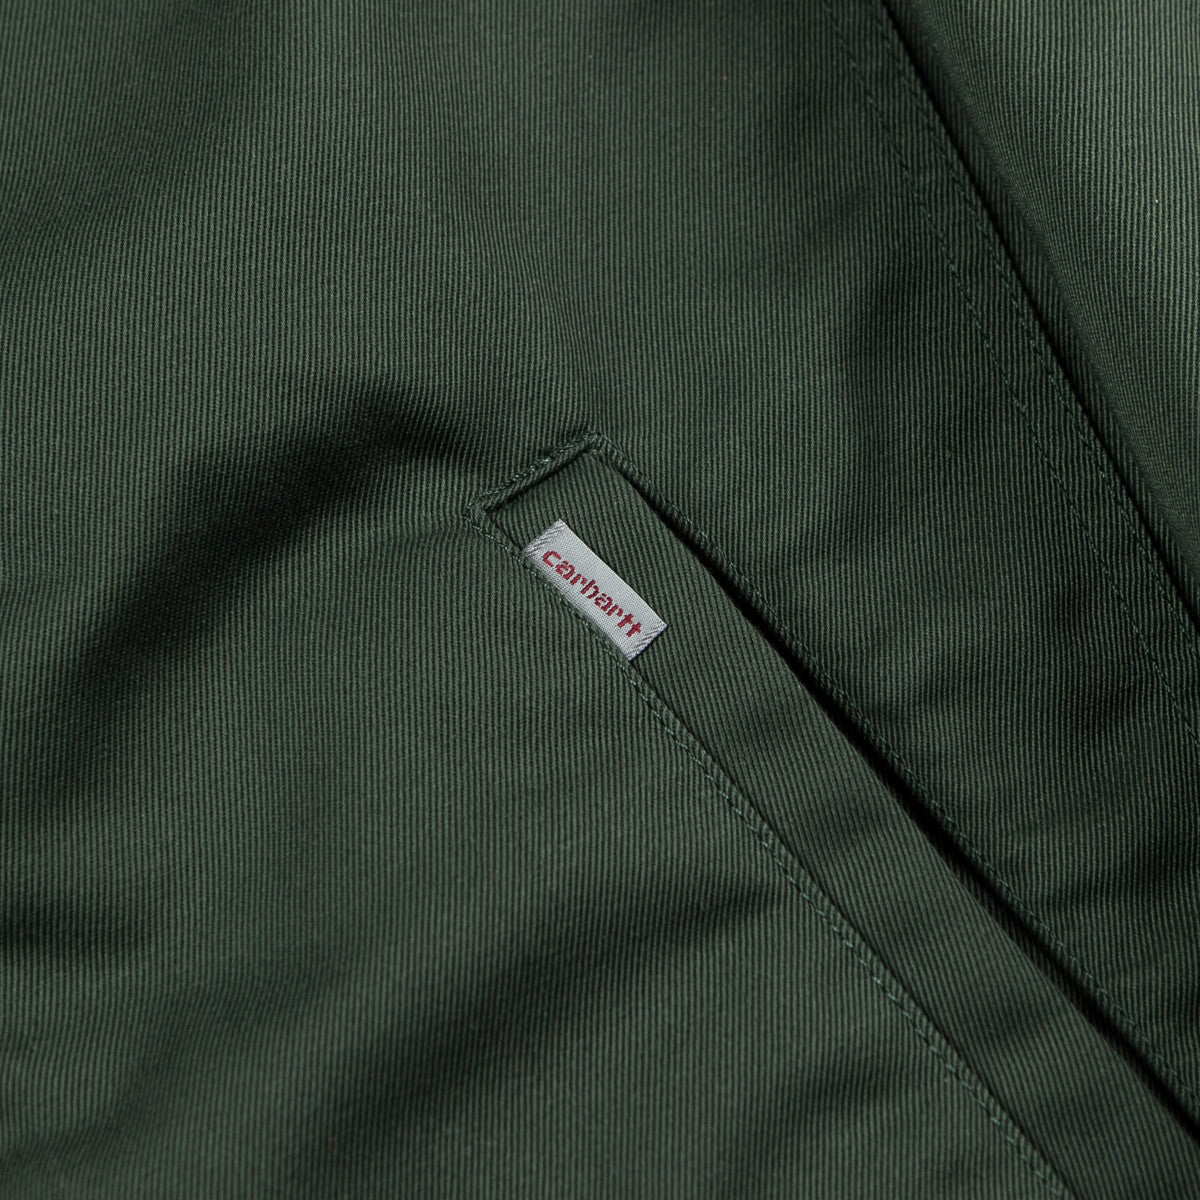 Carhartt Lined Modular Jacket - Laurel